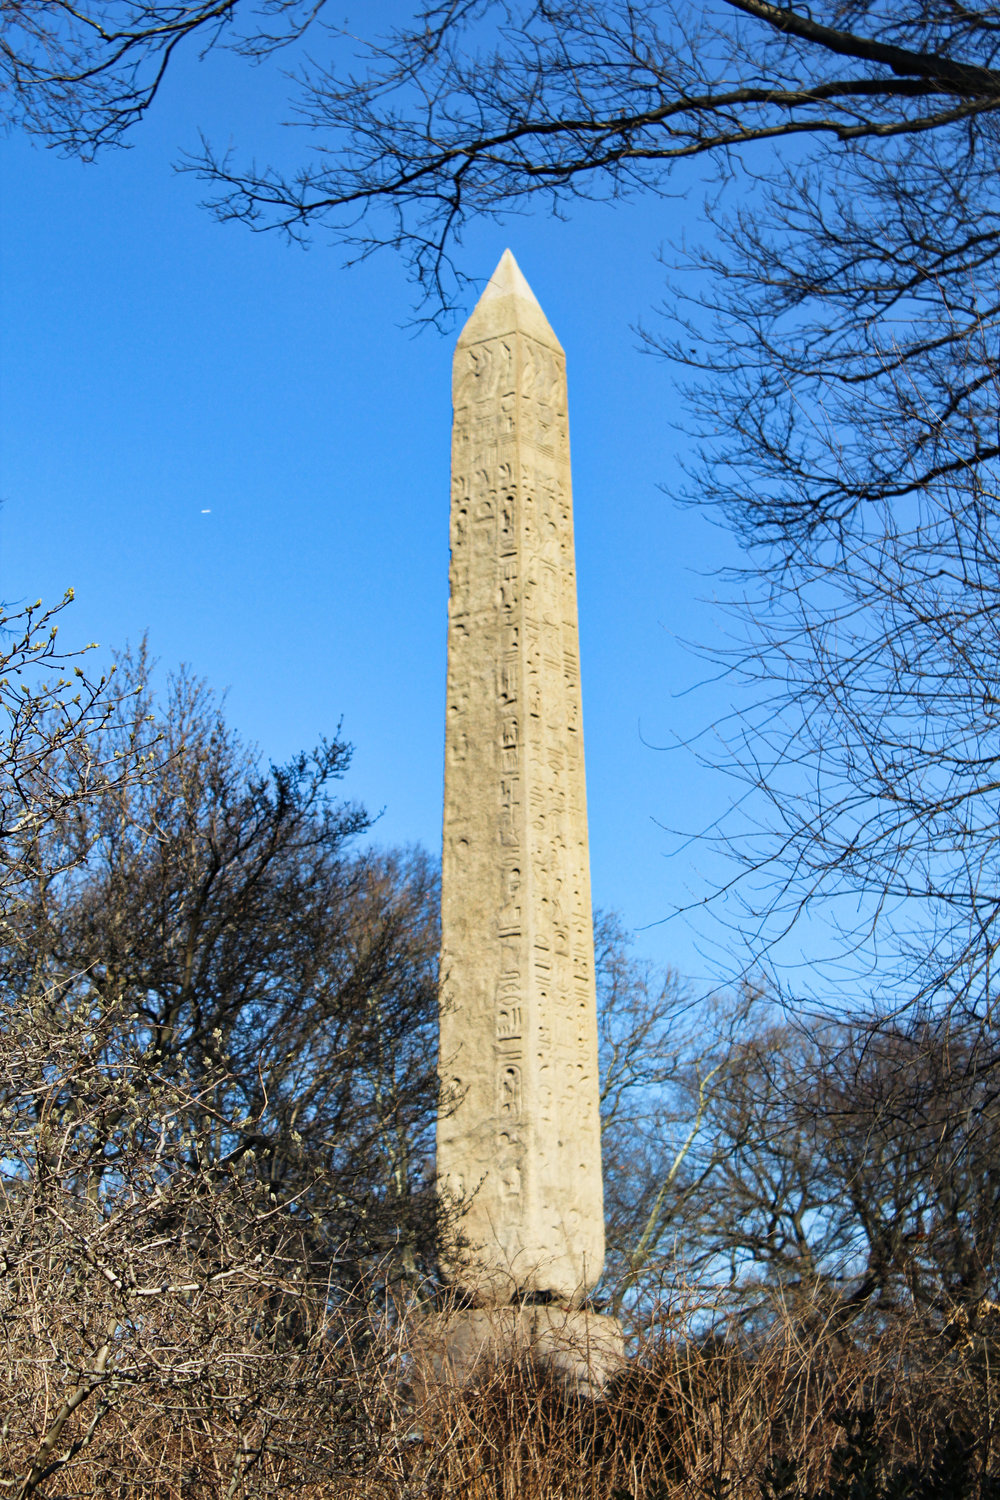 Obelisk from The Met